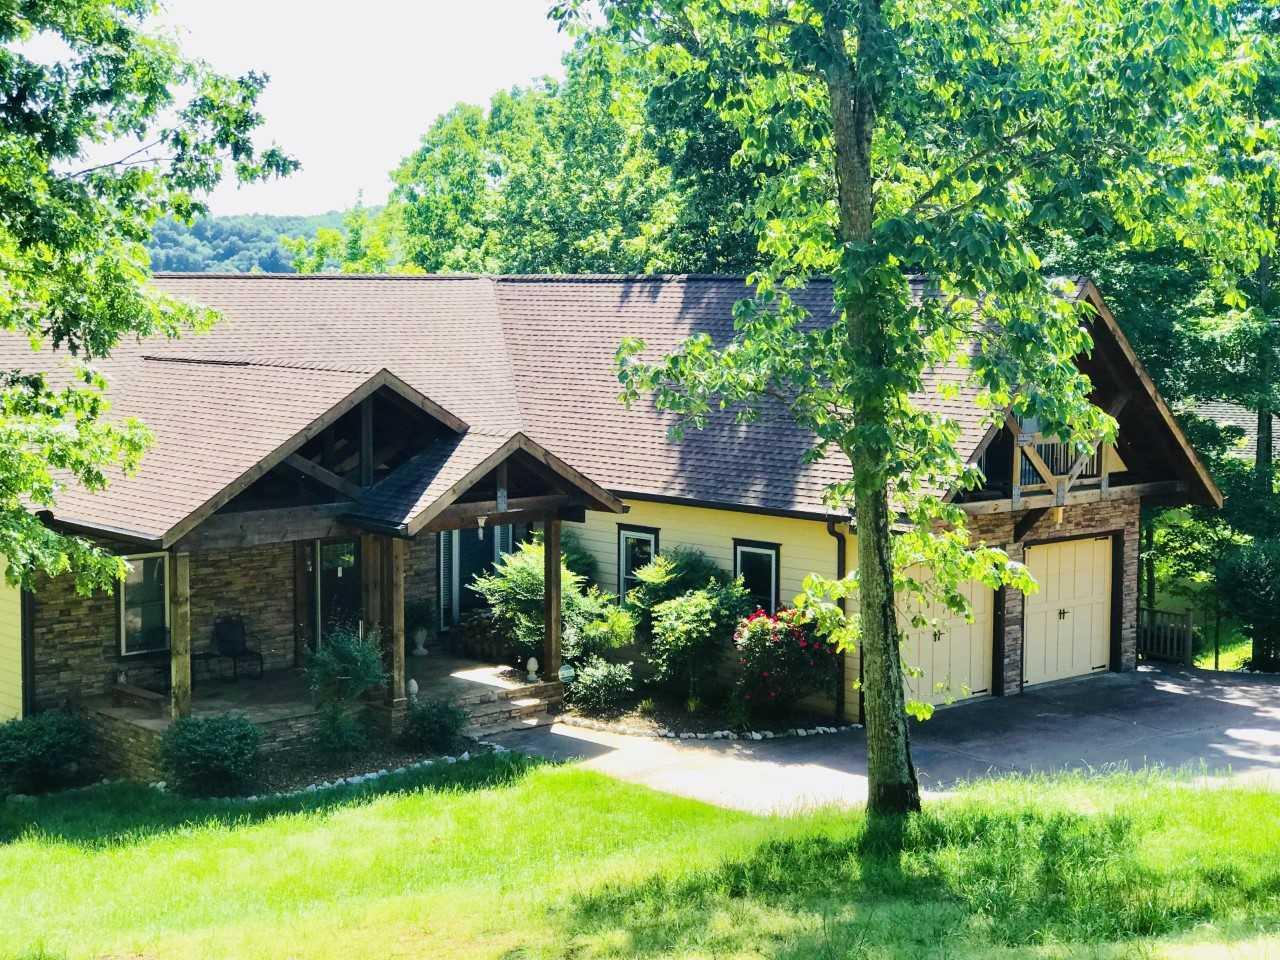 1025 Cornerstone Pkwy, Allons, TN 38541 - Allons, TN real estate listing